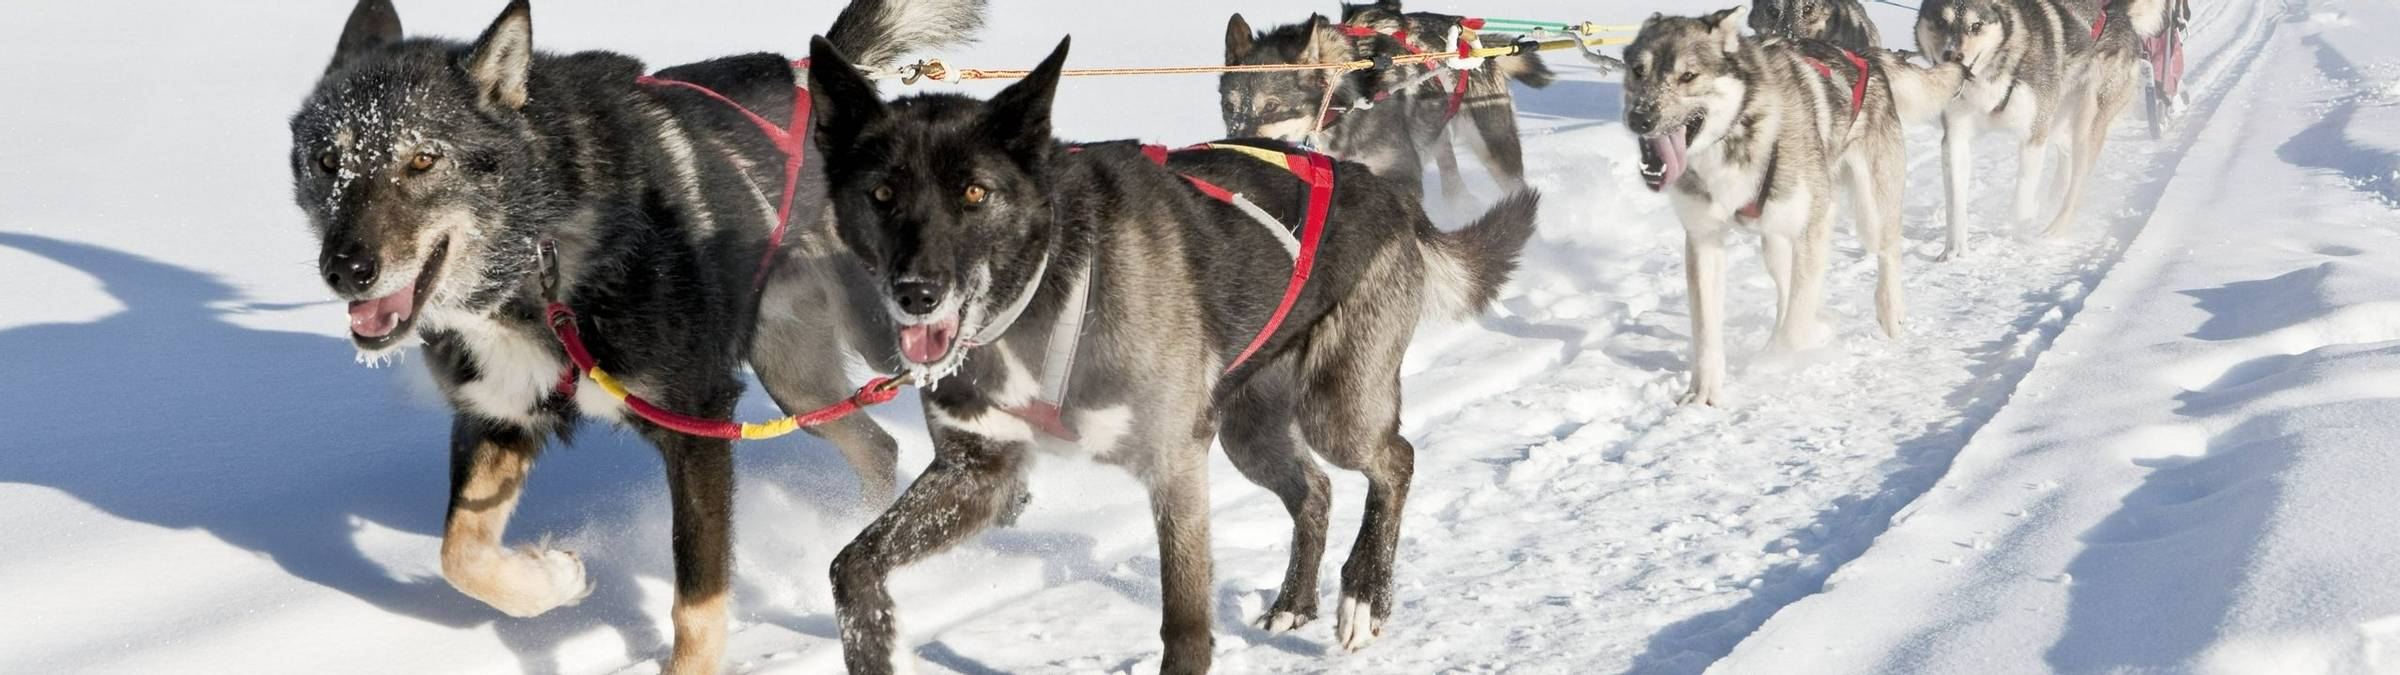 Dog Mushing at Uncommon Journeys, Whitehorse, Yukon, Canada; March 3, 2009.  Releases on file with Tourism Yukon.